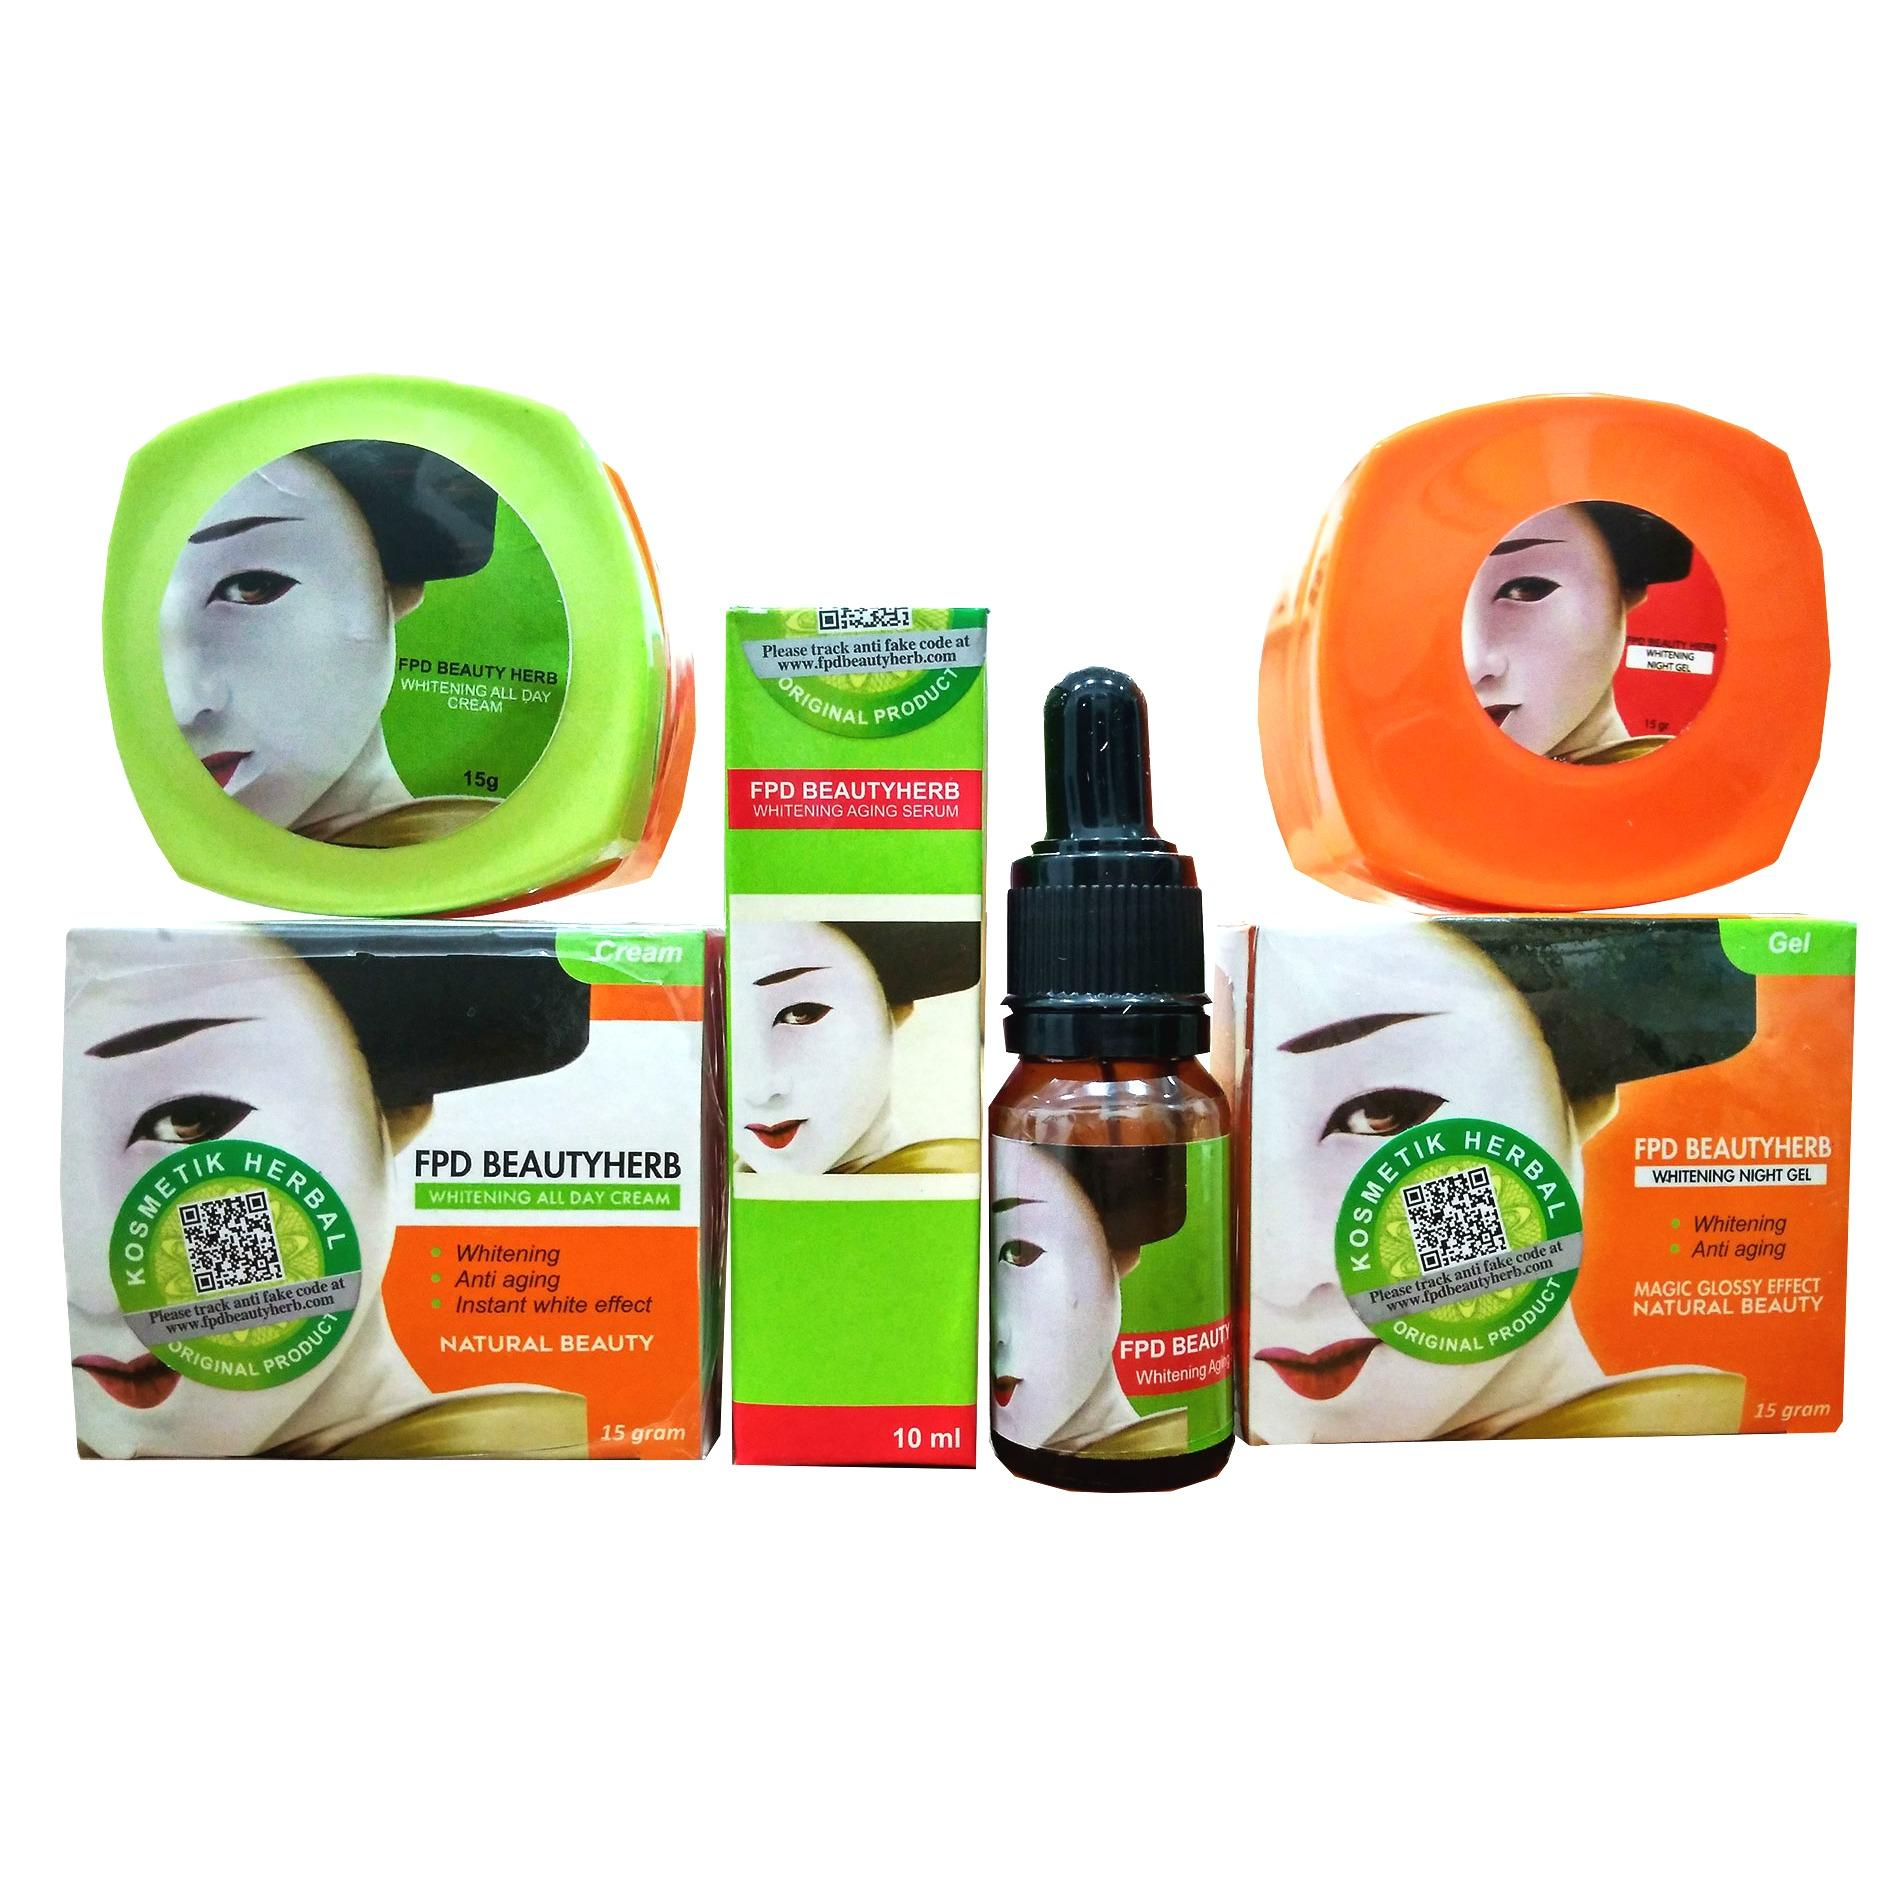 Magic Glossy Cream Paket Perawatan Wajah Fpd Beauty Herbal - BPOM